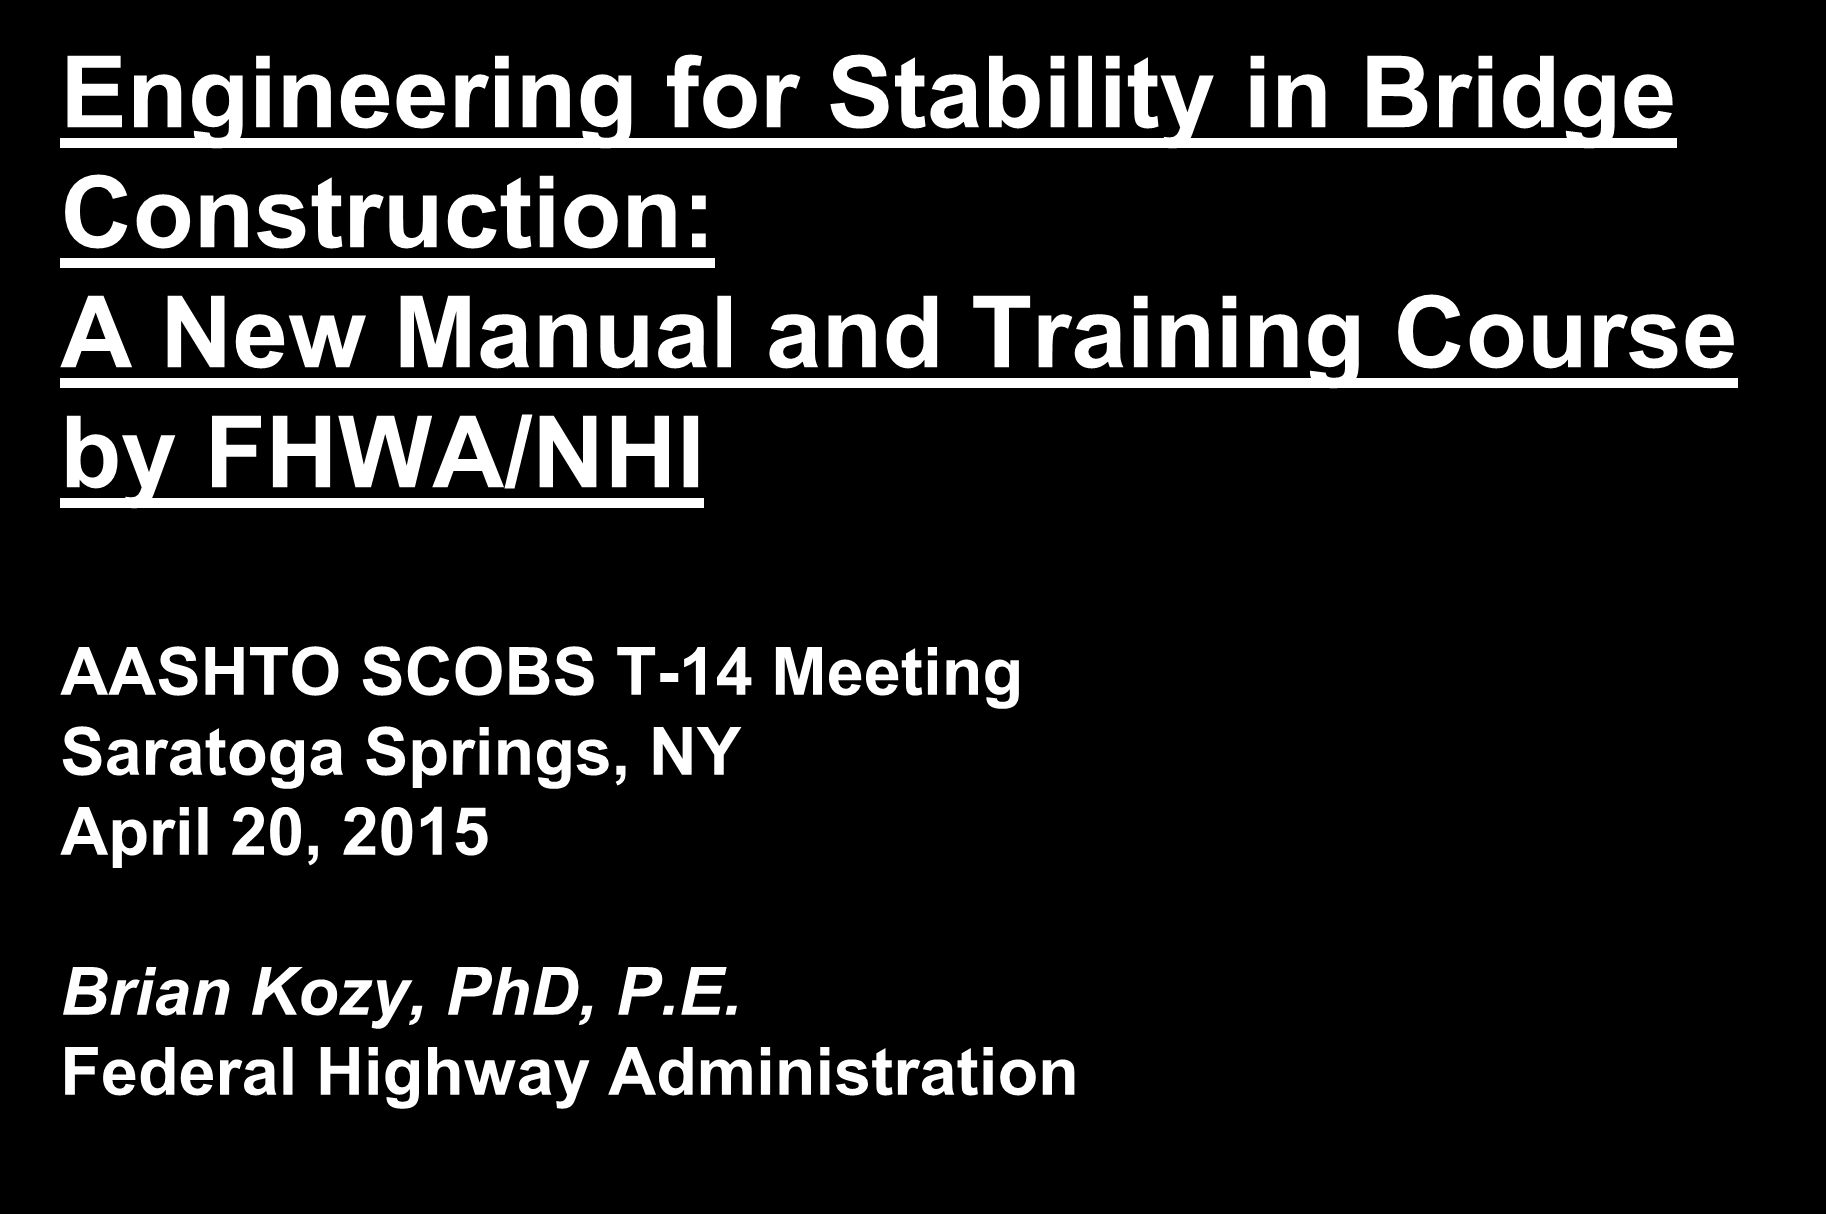 Engineering for Stability in Bridge Construction: A New Manual and